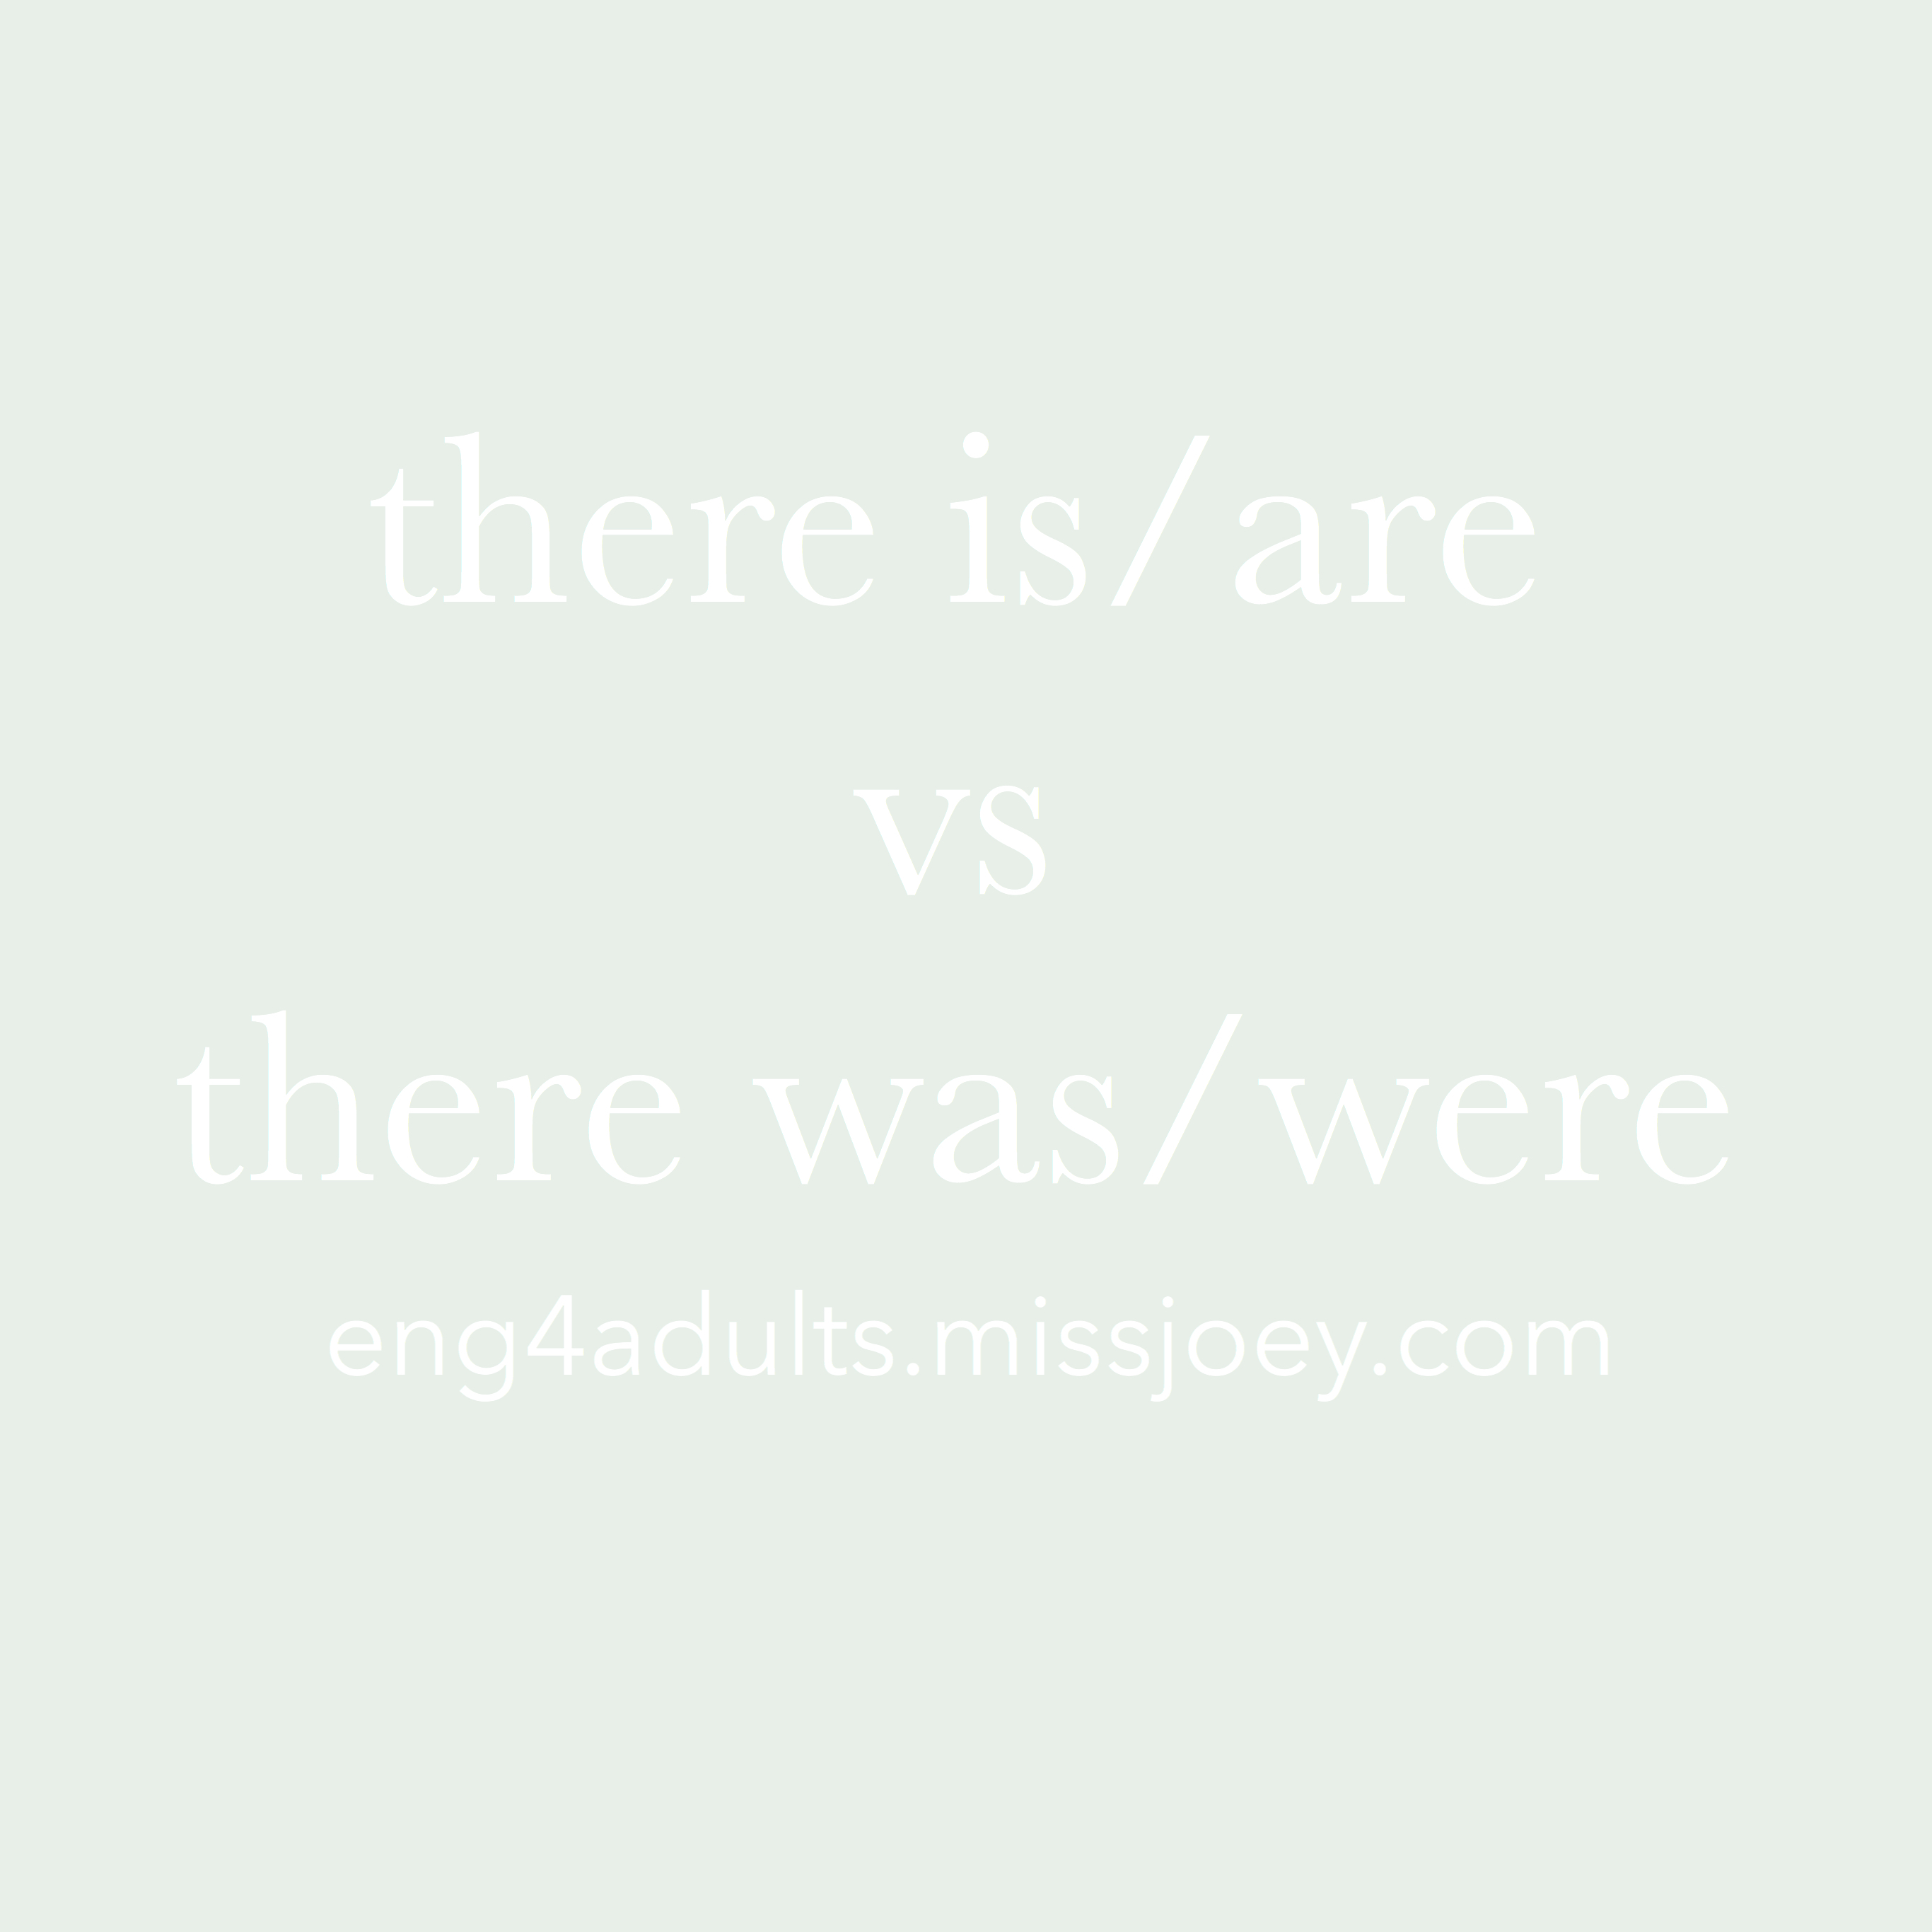 每日一字:there is/are vs there was/were